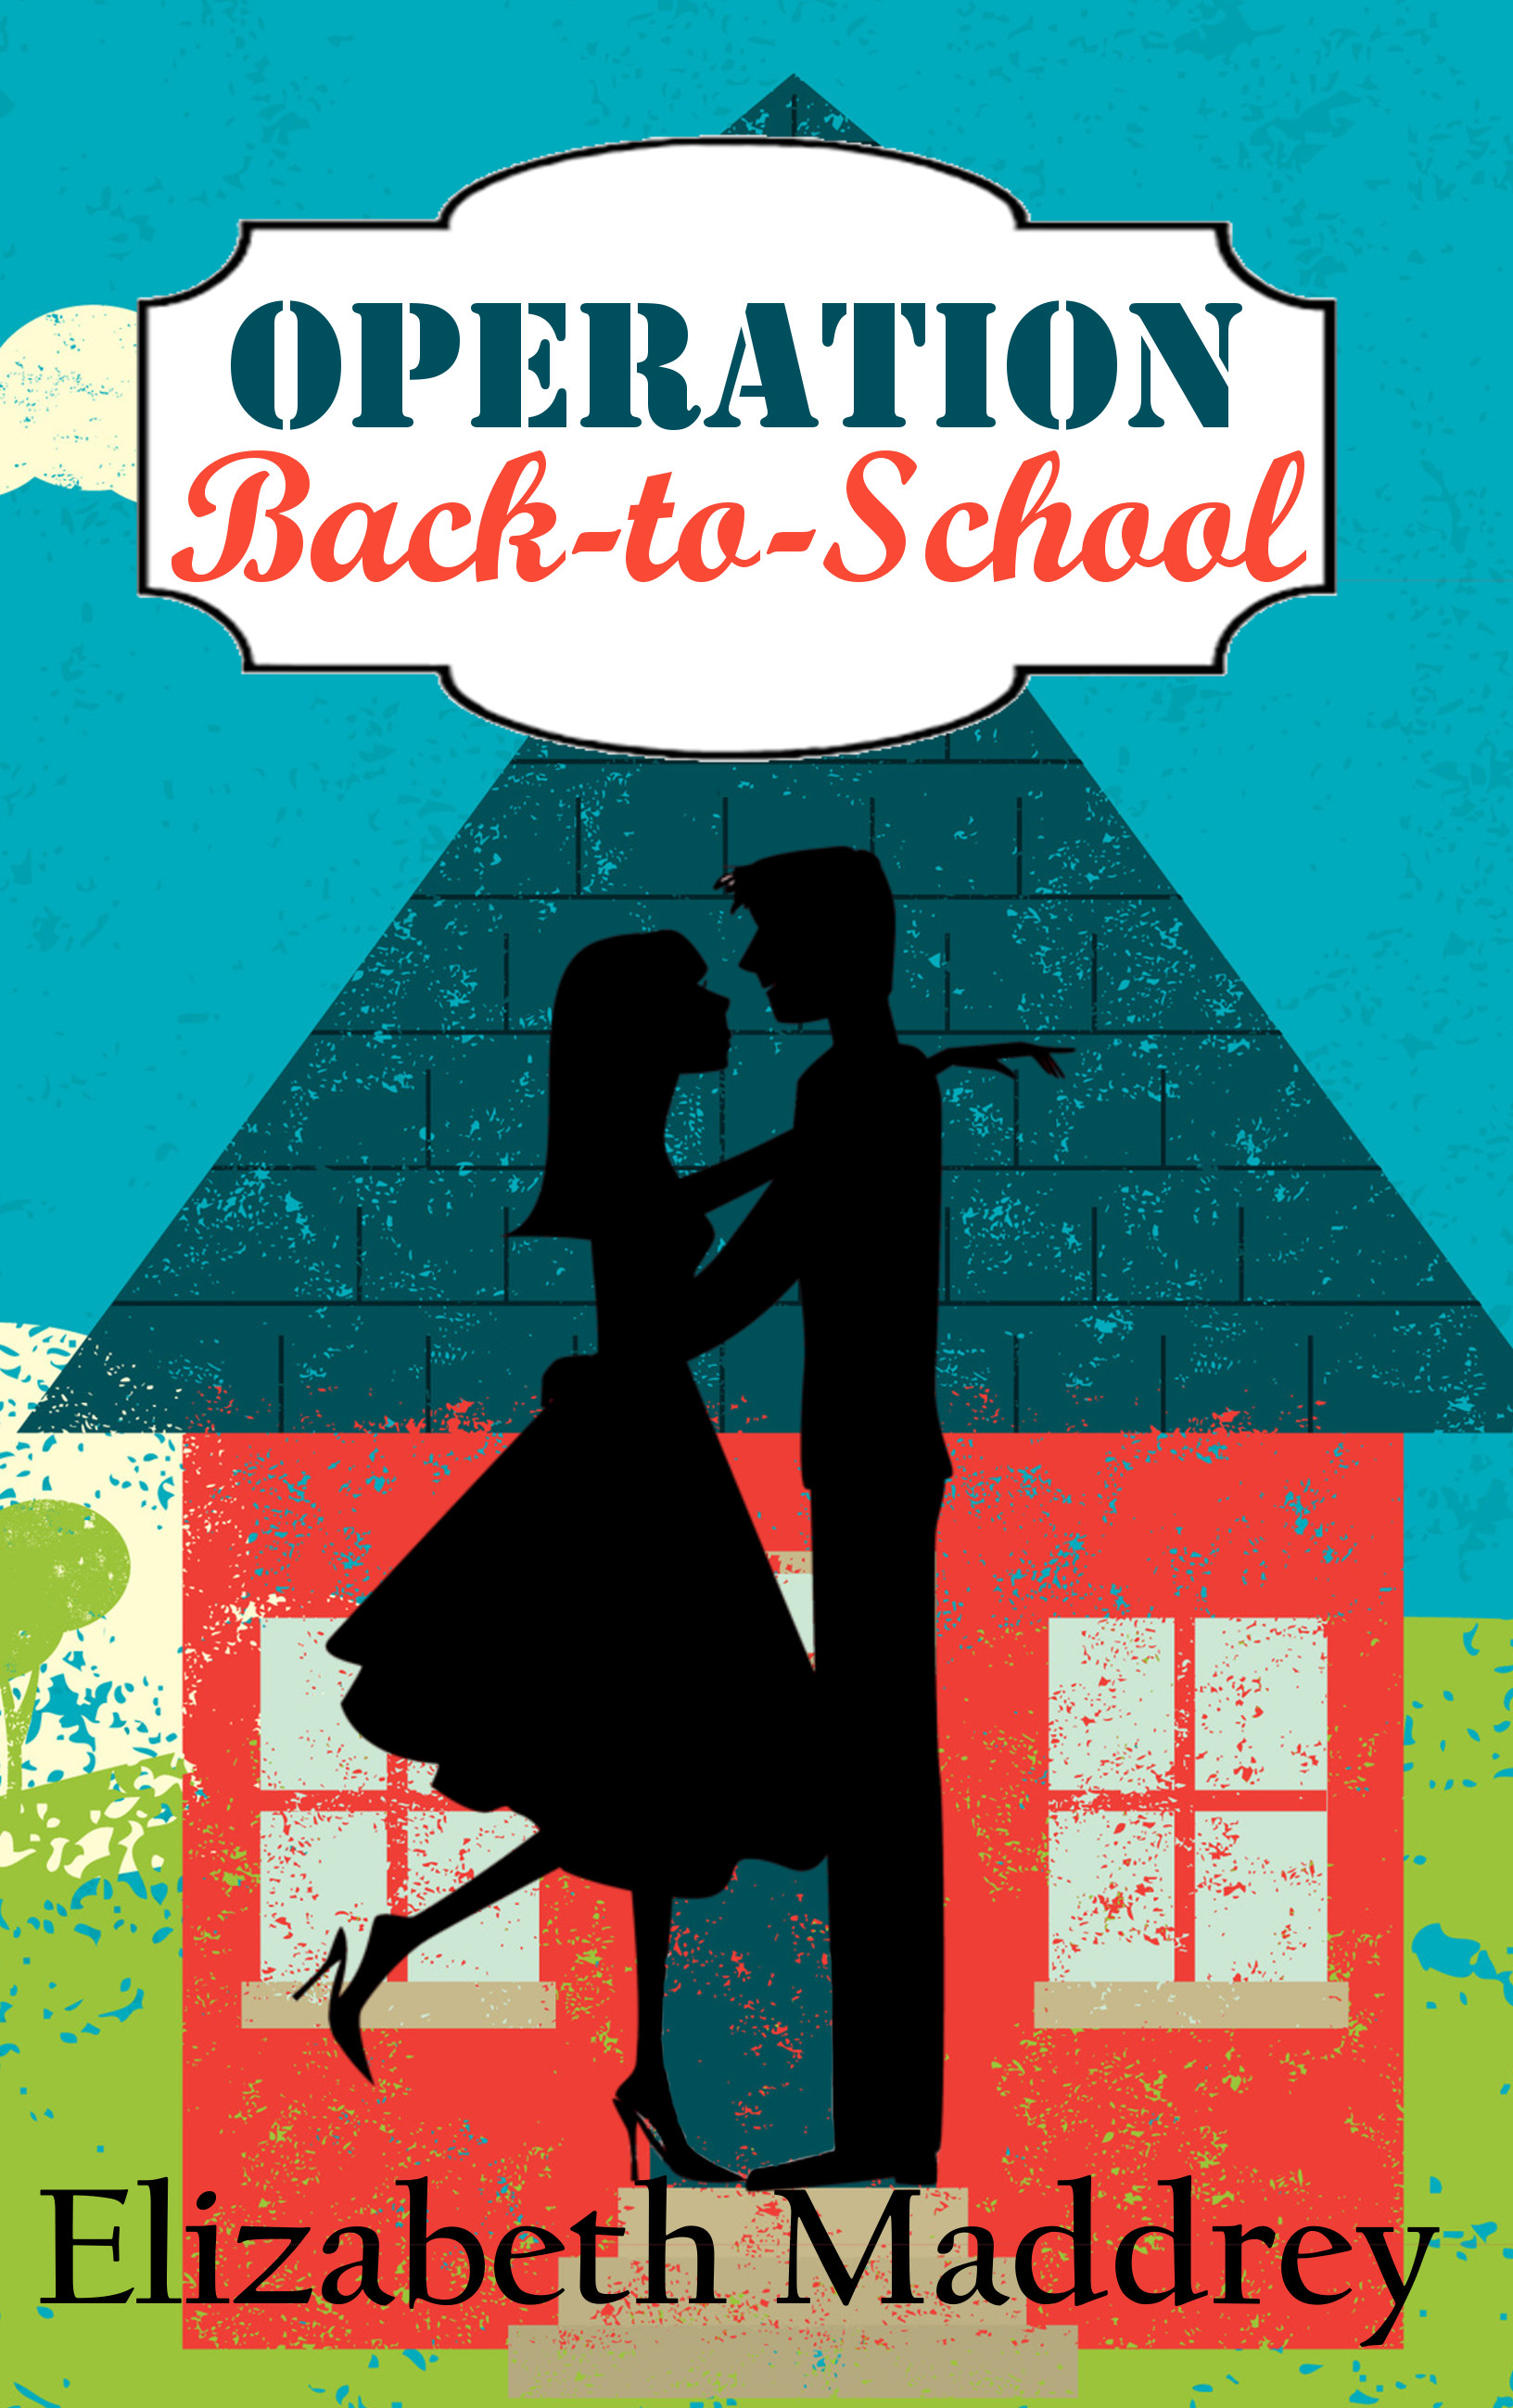 Operation Back-to-School Is Now Available!